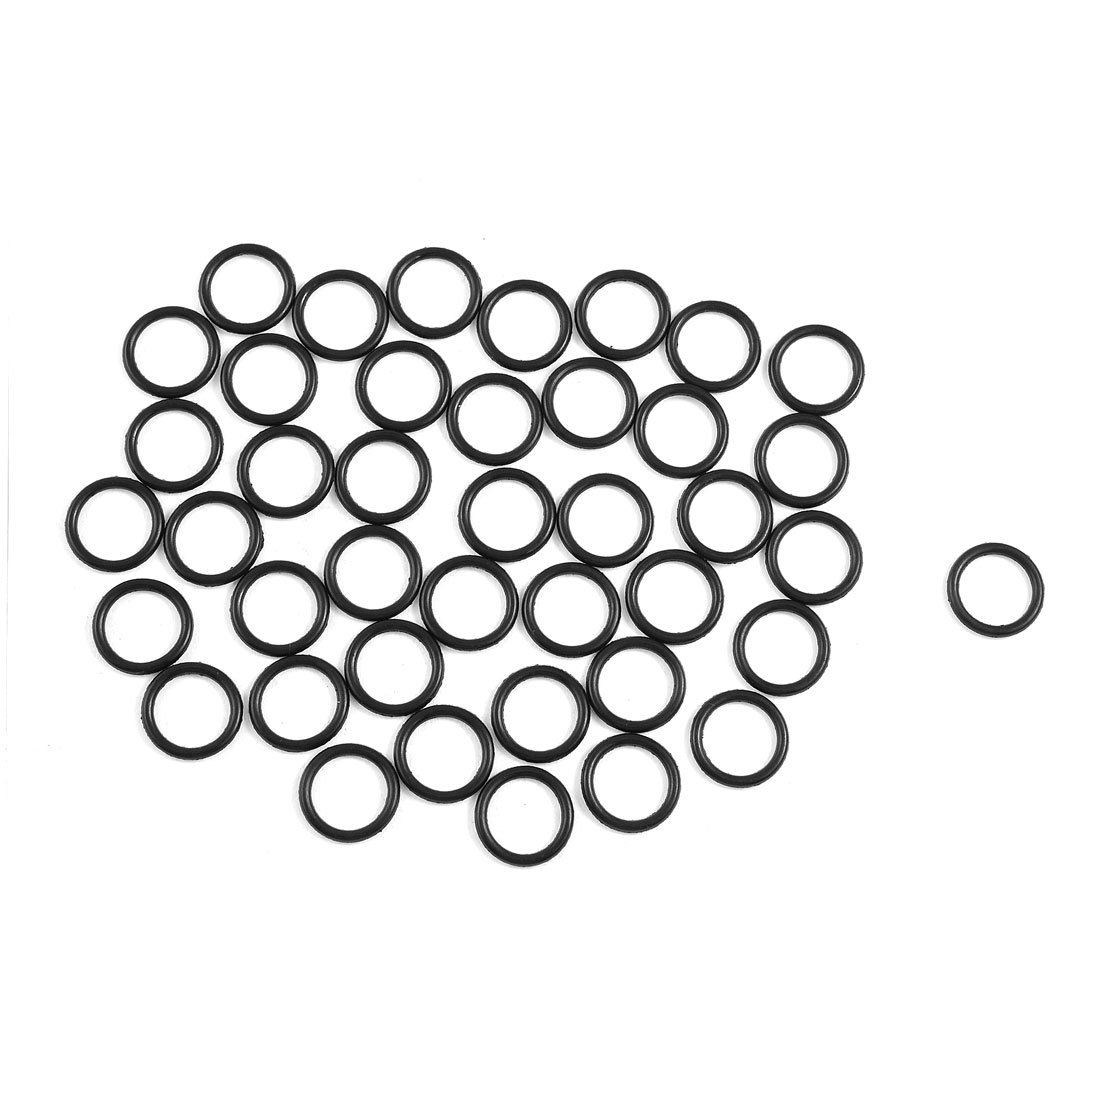 Uxcell 50 Pcs 1 5mm Sealing Nbr O Rings Gaskets Washers Id